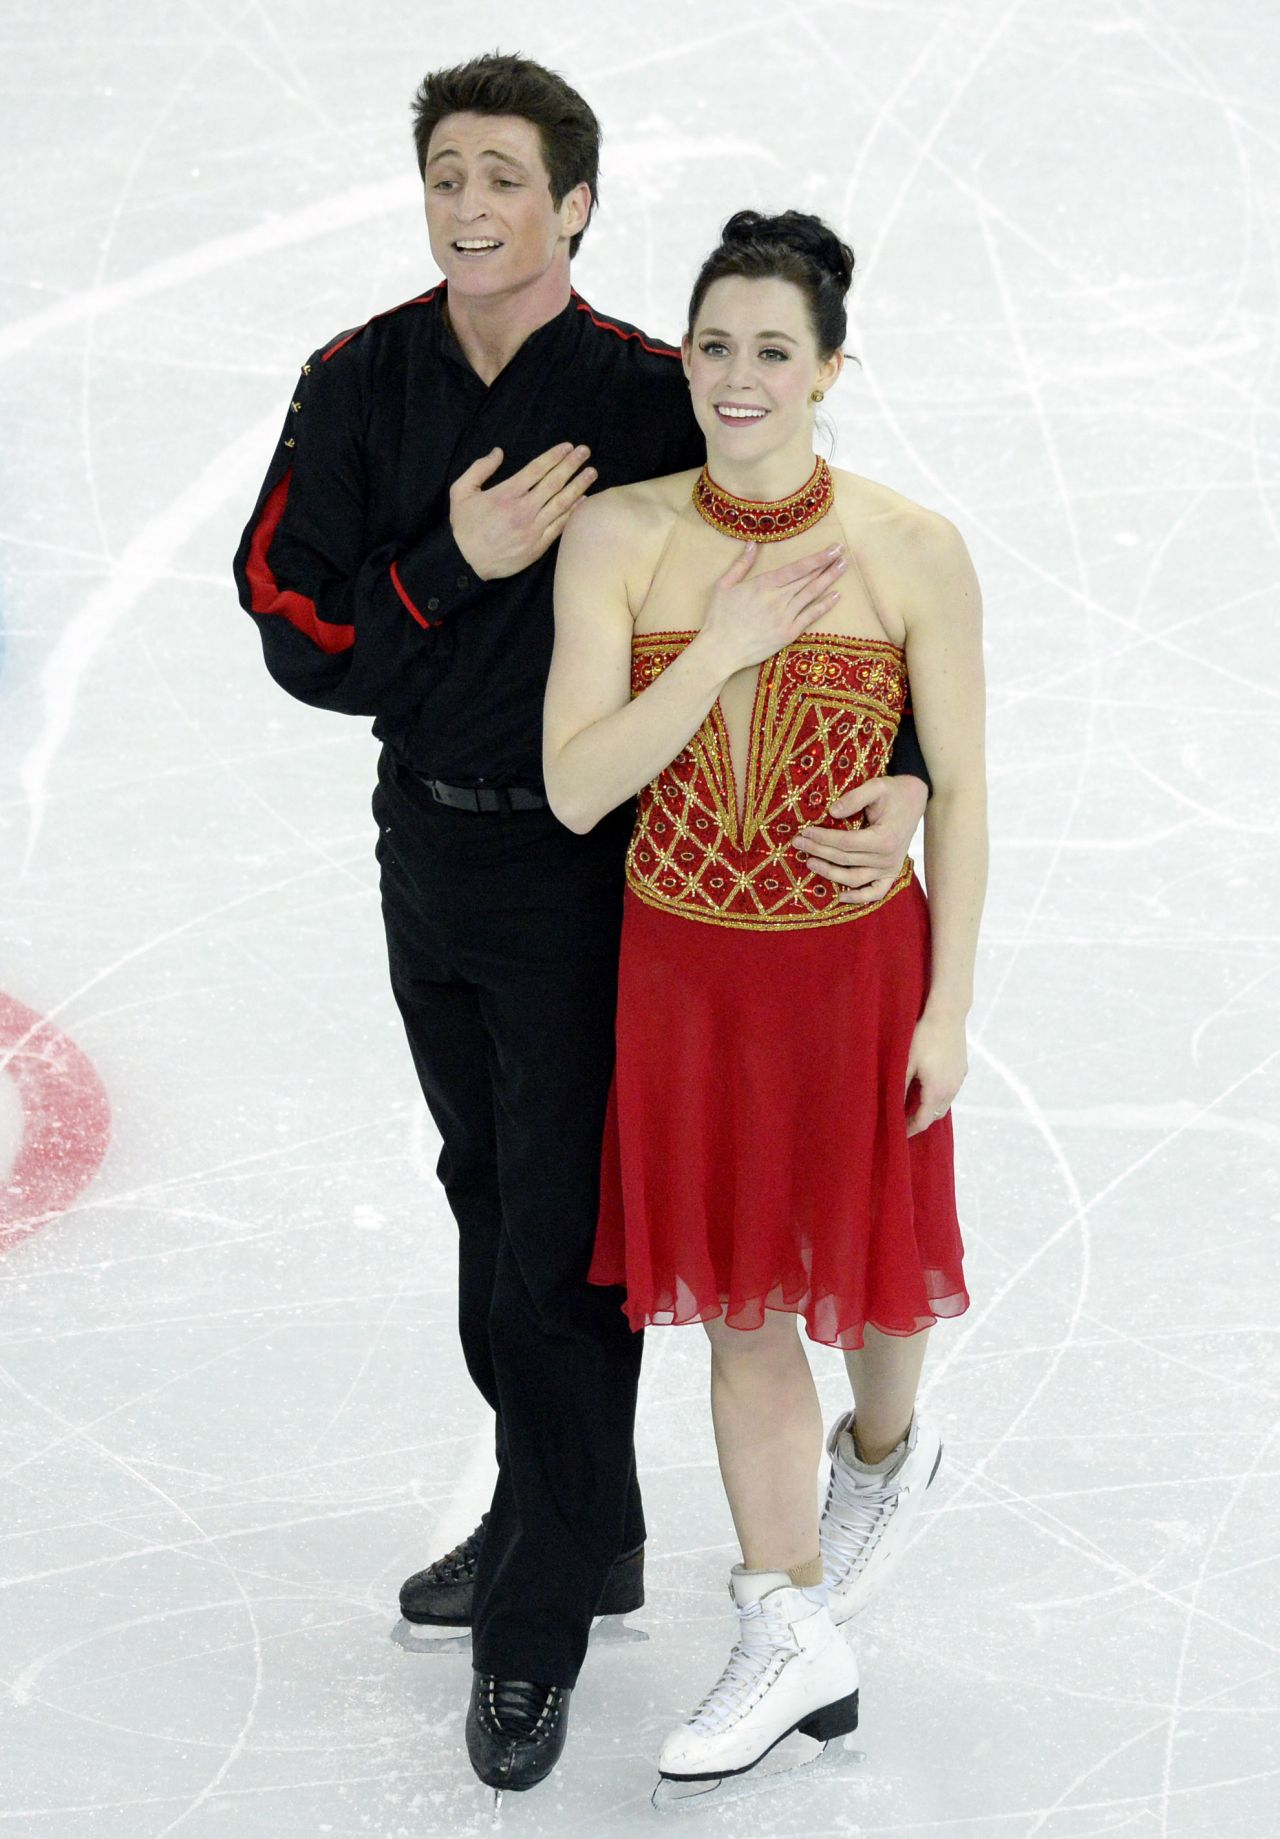 Tessa Virtue - Sochi 2014 Winter Olympics - Team Ice Dance Free Dance